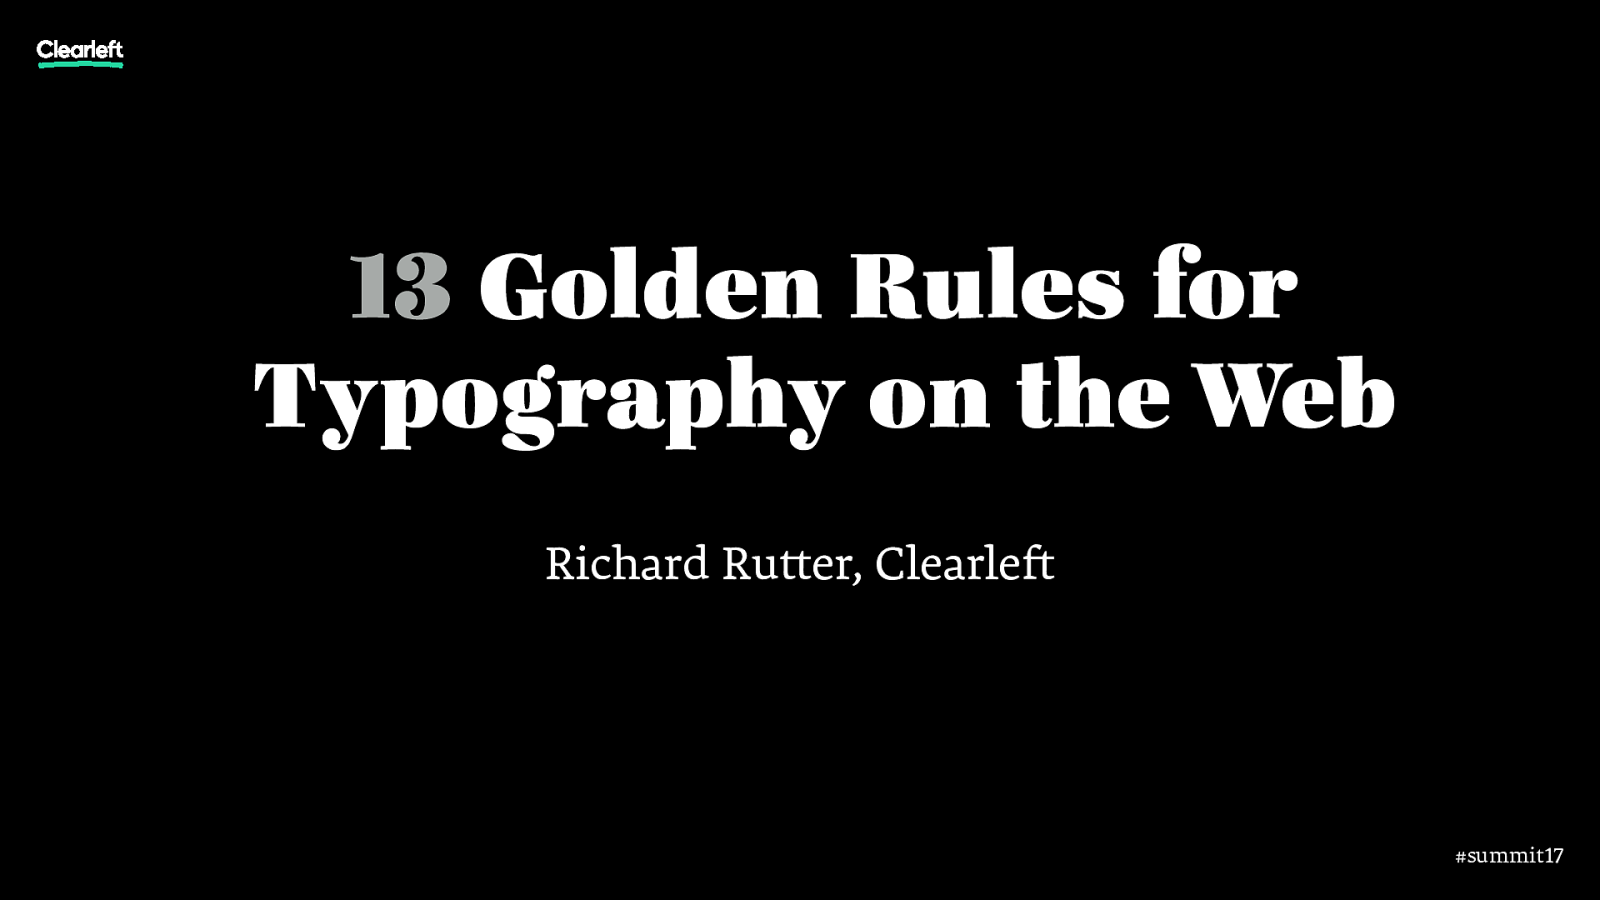 13 Golden Rules of Typography on the Web